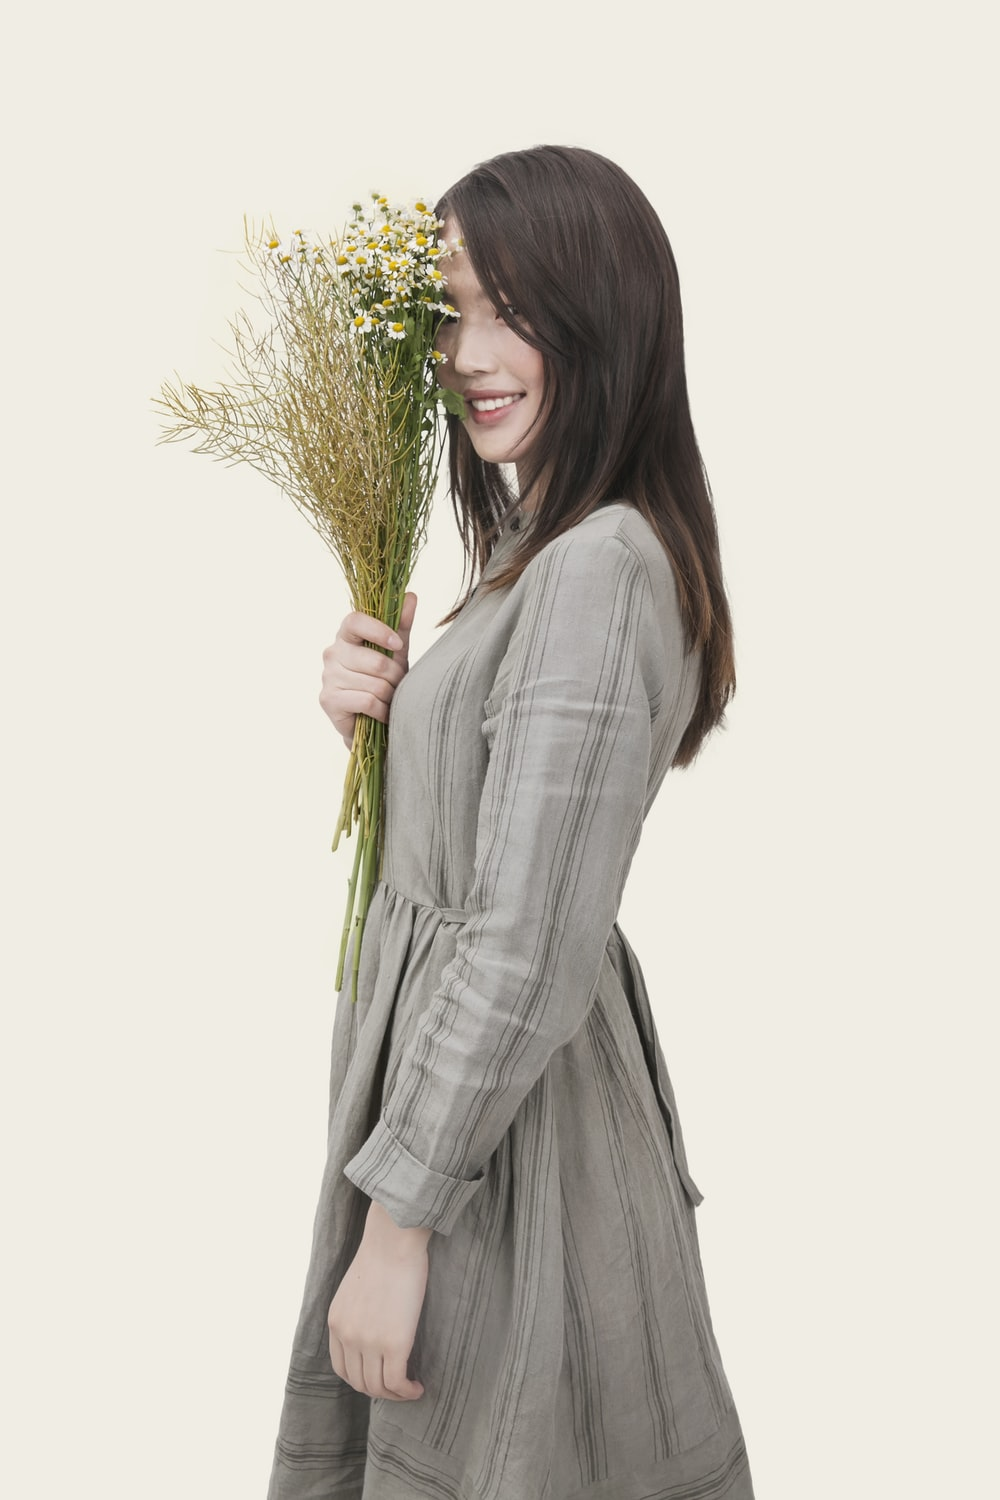 woman wearing gray and black striped long-sleeved dress holding white petaled flowers